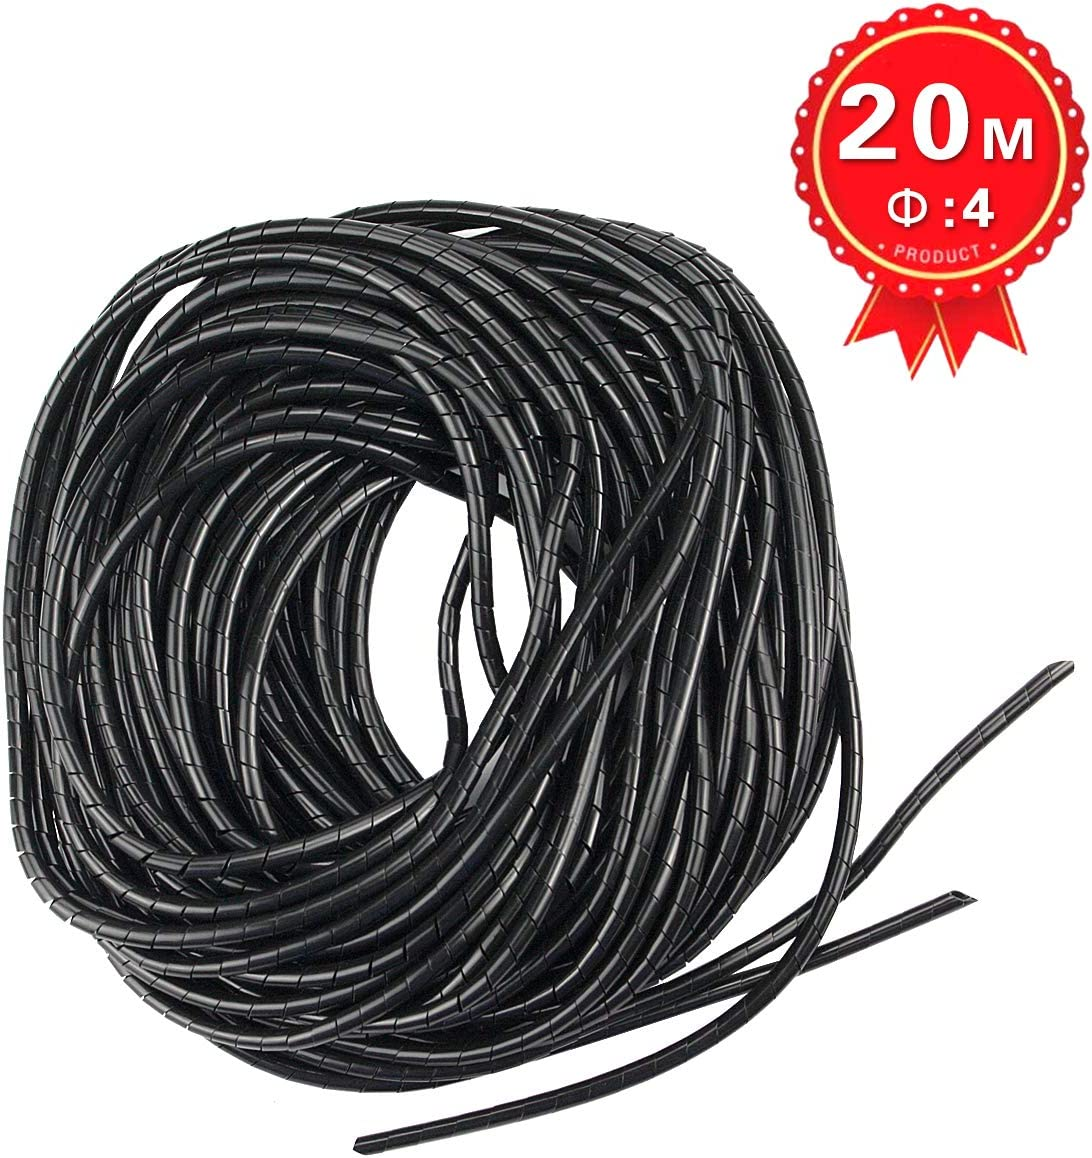 Xhf 4Mm Spiral Cable Wrap Spiral Wire Wrap Cord For C Wrapping Range:1.5Mm-10Mm